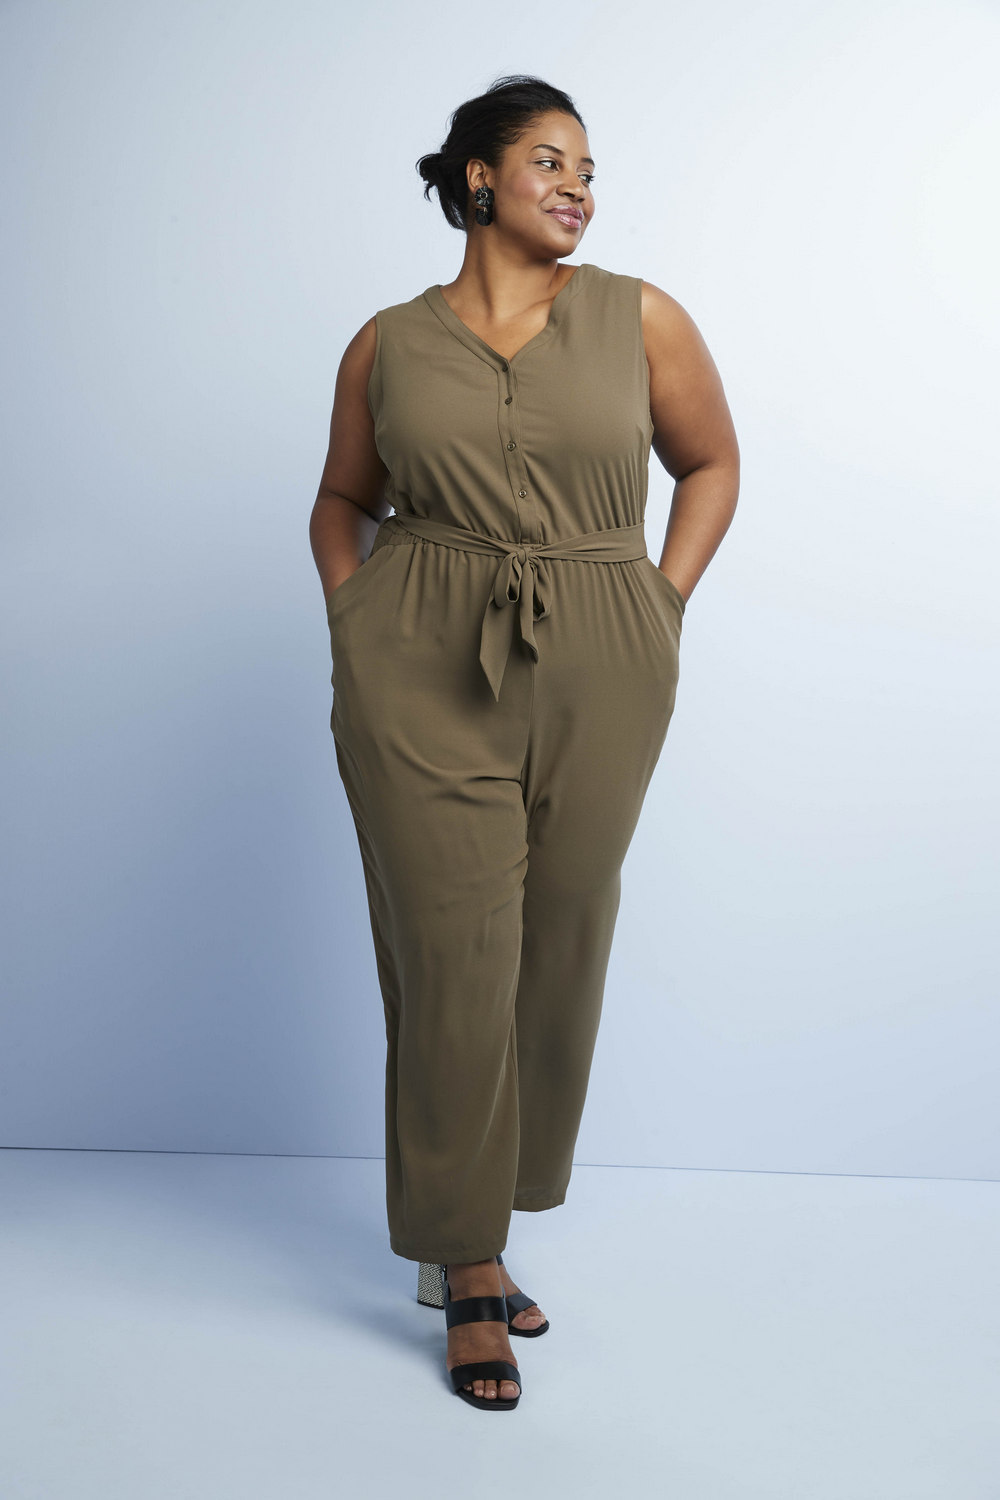 e6c32ac0ed The Scoop  Kohl s Launches NEW Women s Plus Size Brand- EVRI!